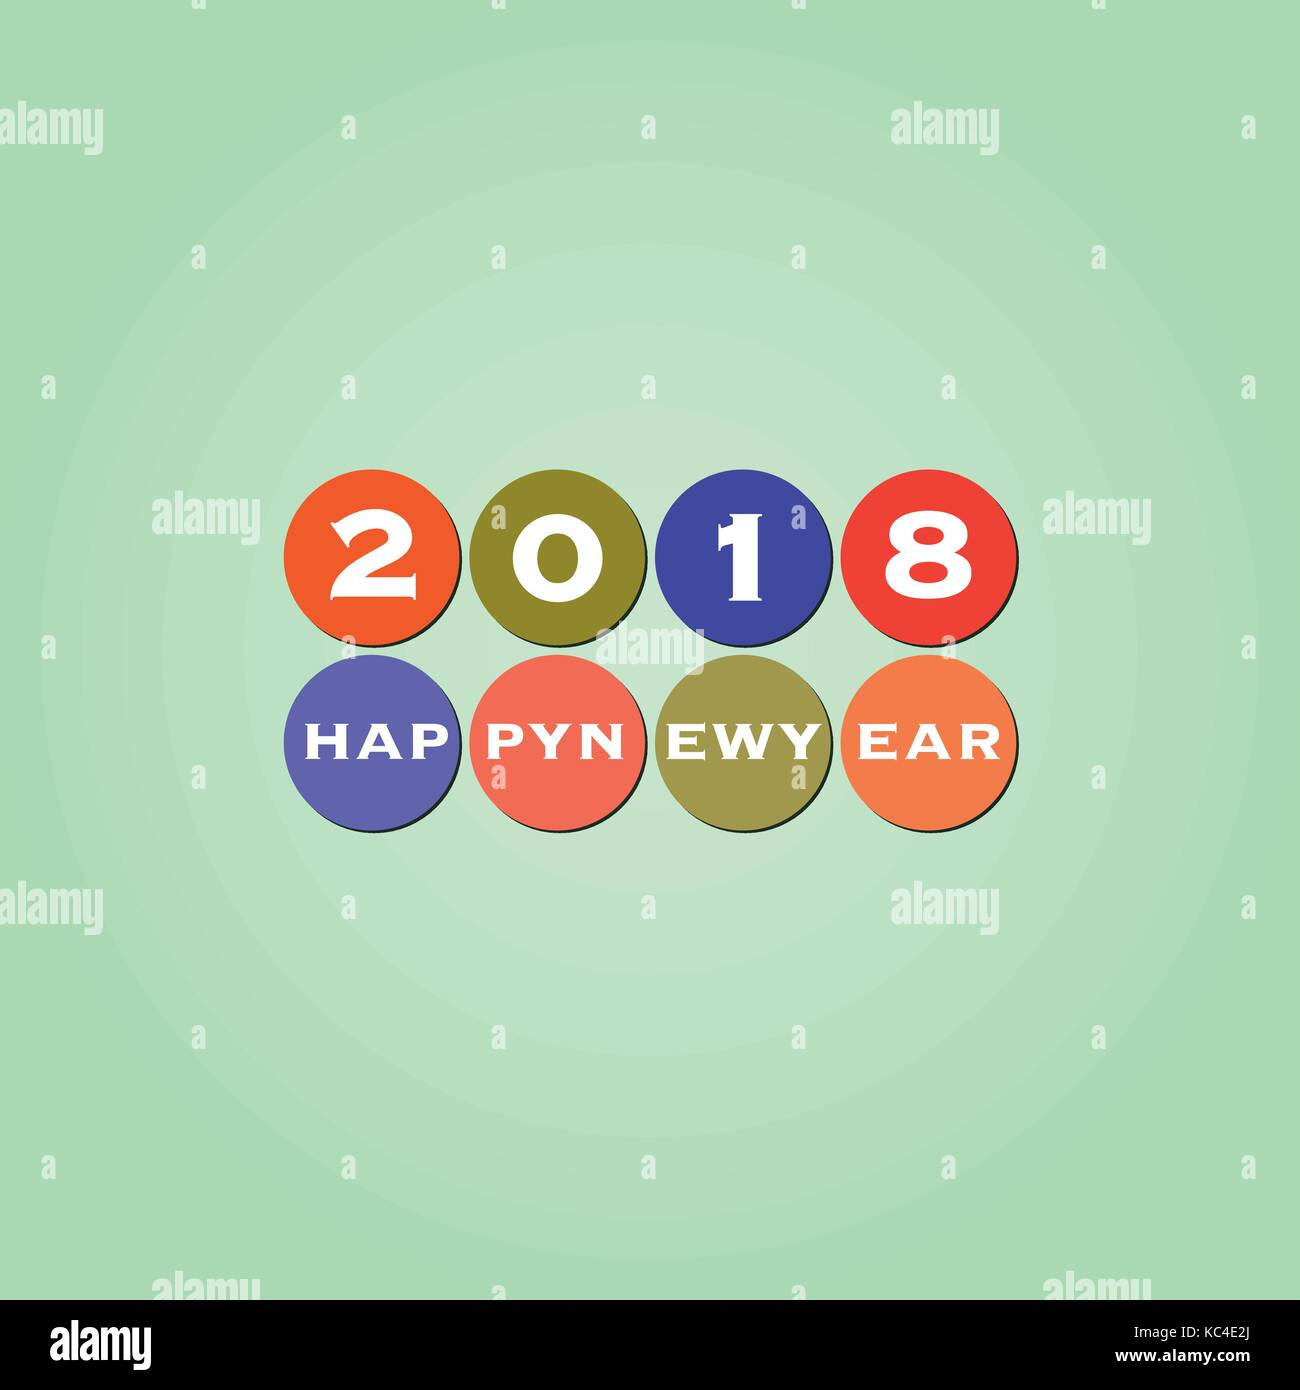 best wishes modern simple minimal happy new year card or cover background template 2018